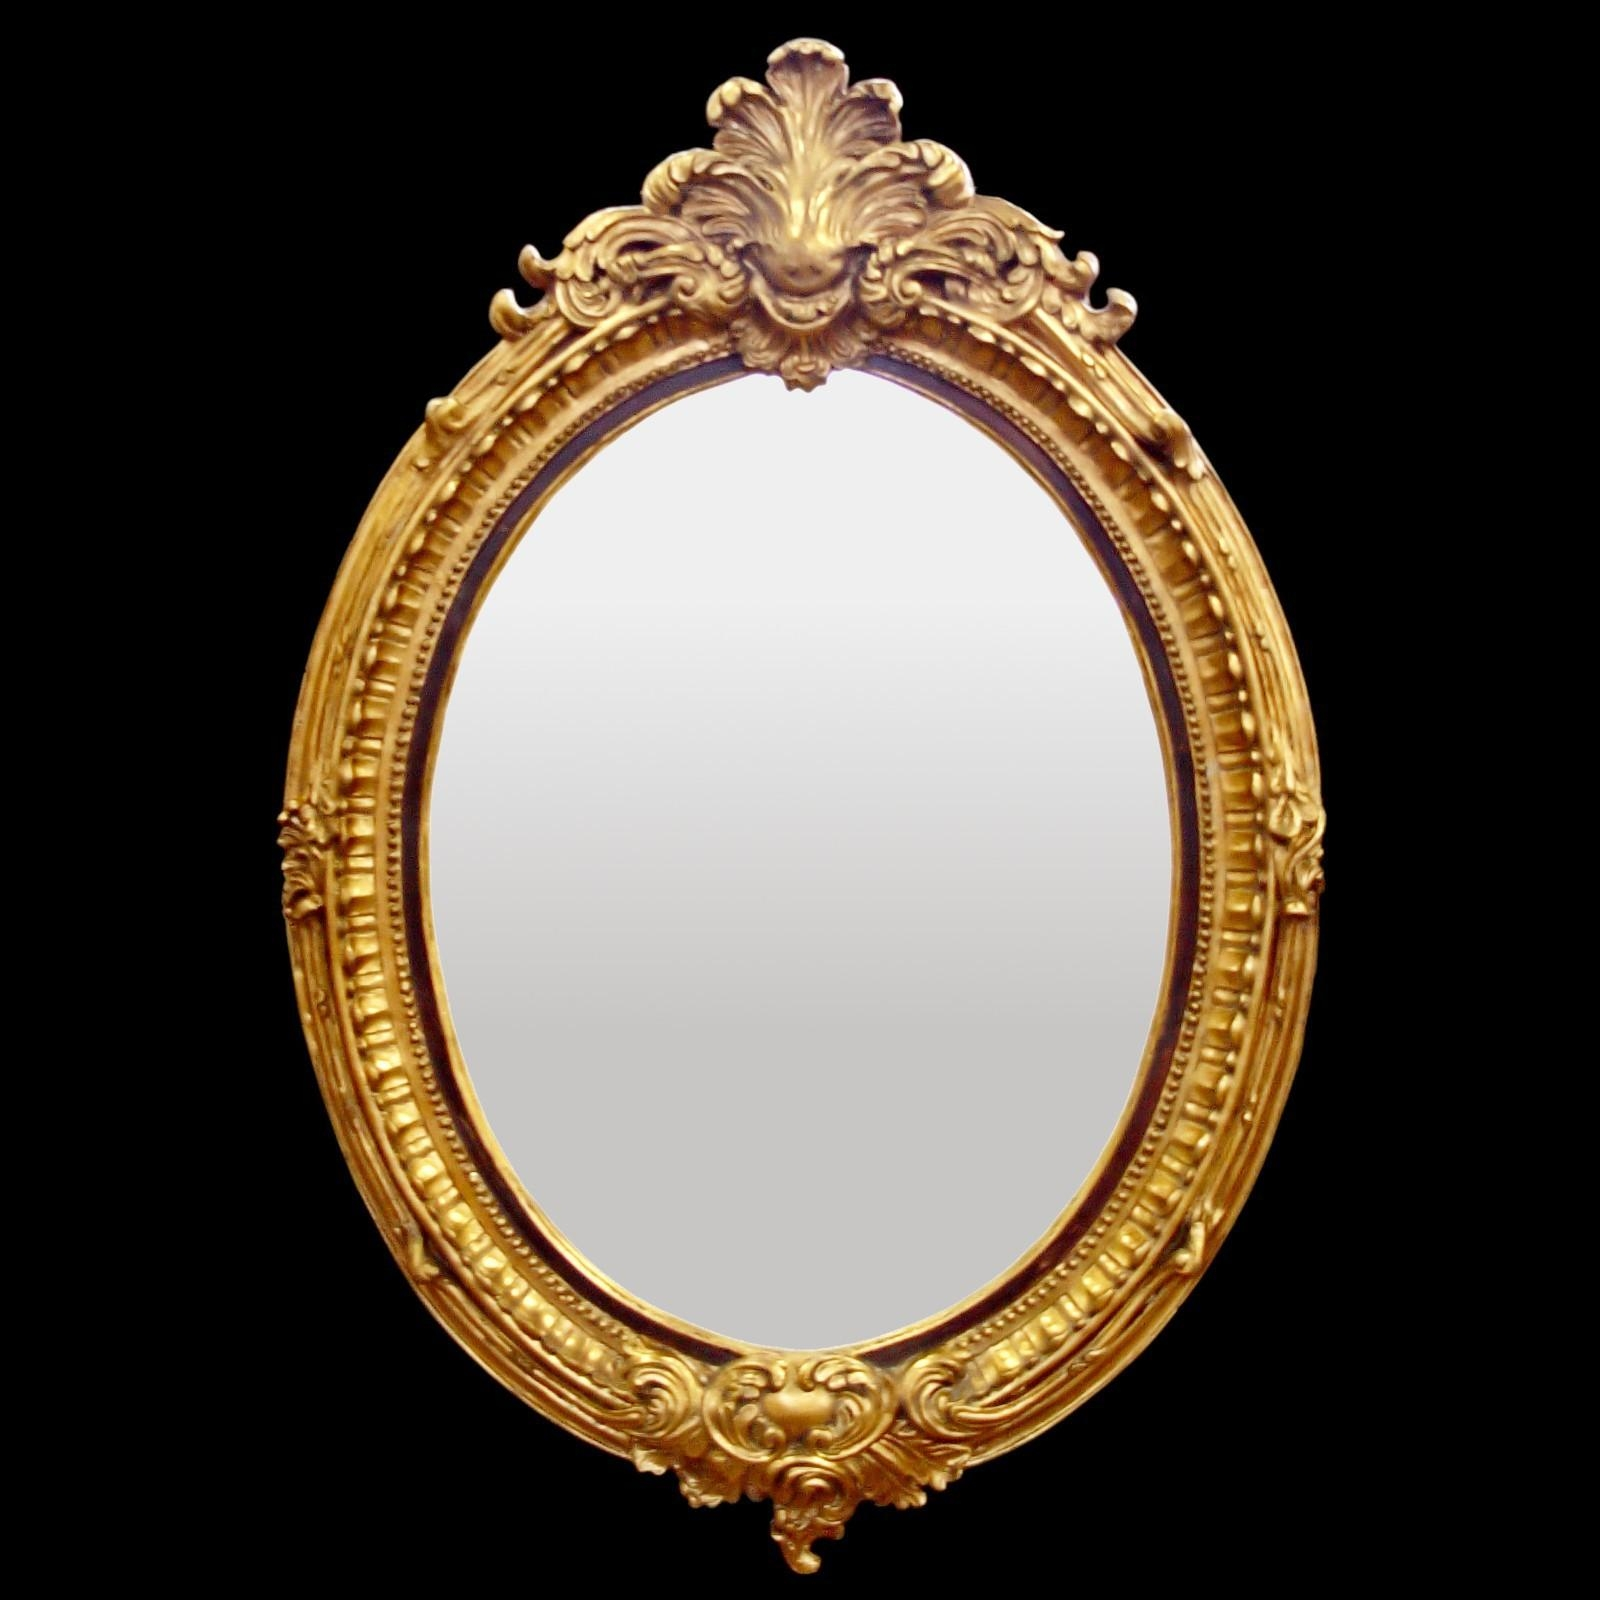 Baroque Hall Mirror Oval Wall Mirror Gold Color Red Leaf Motif Within Baroque Wall Mirror (View 10 of 20)